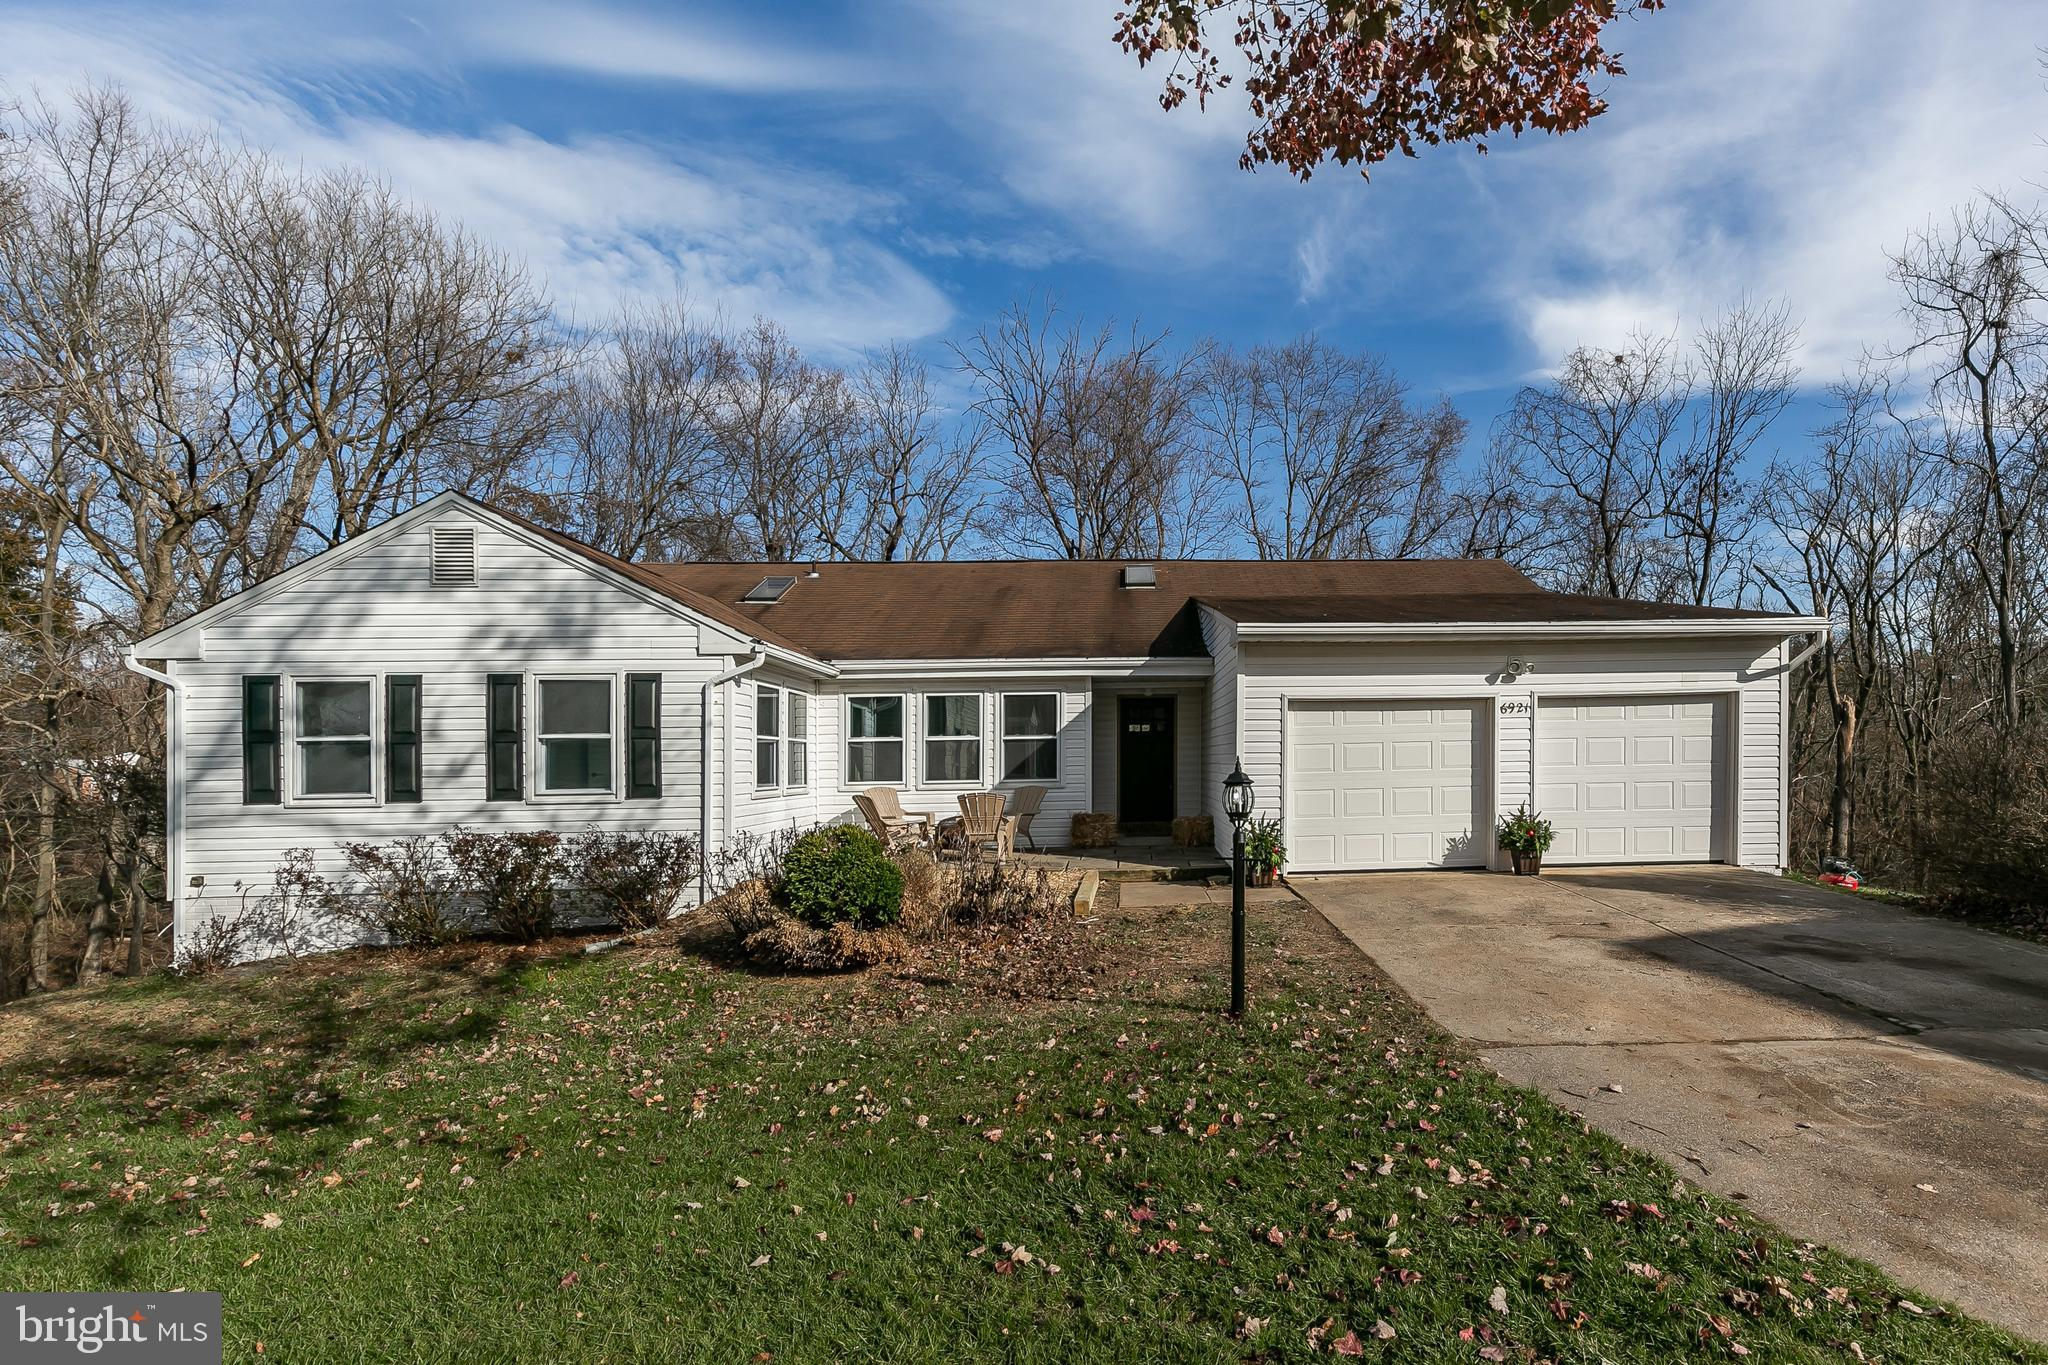 Fully remodeled 5 bedroom, 3 full bath rancher in the Macgills Common neighborhood in the Village of